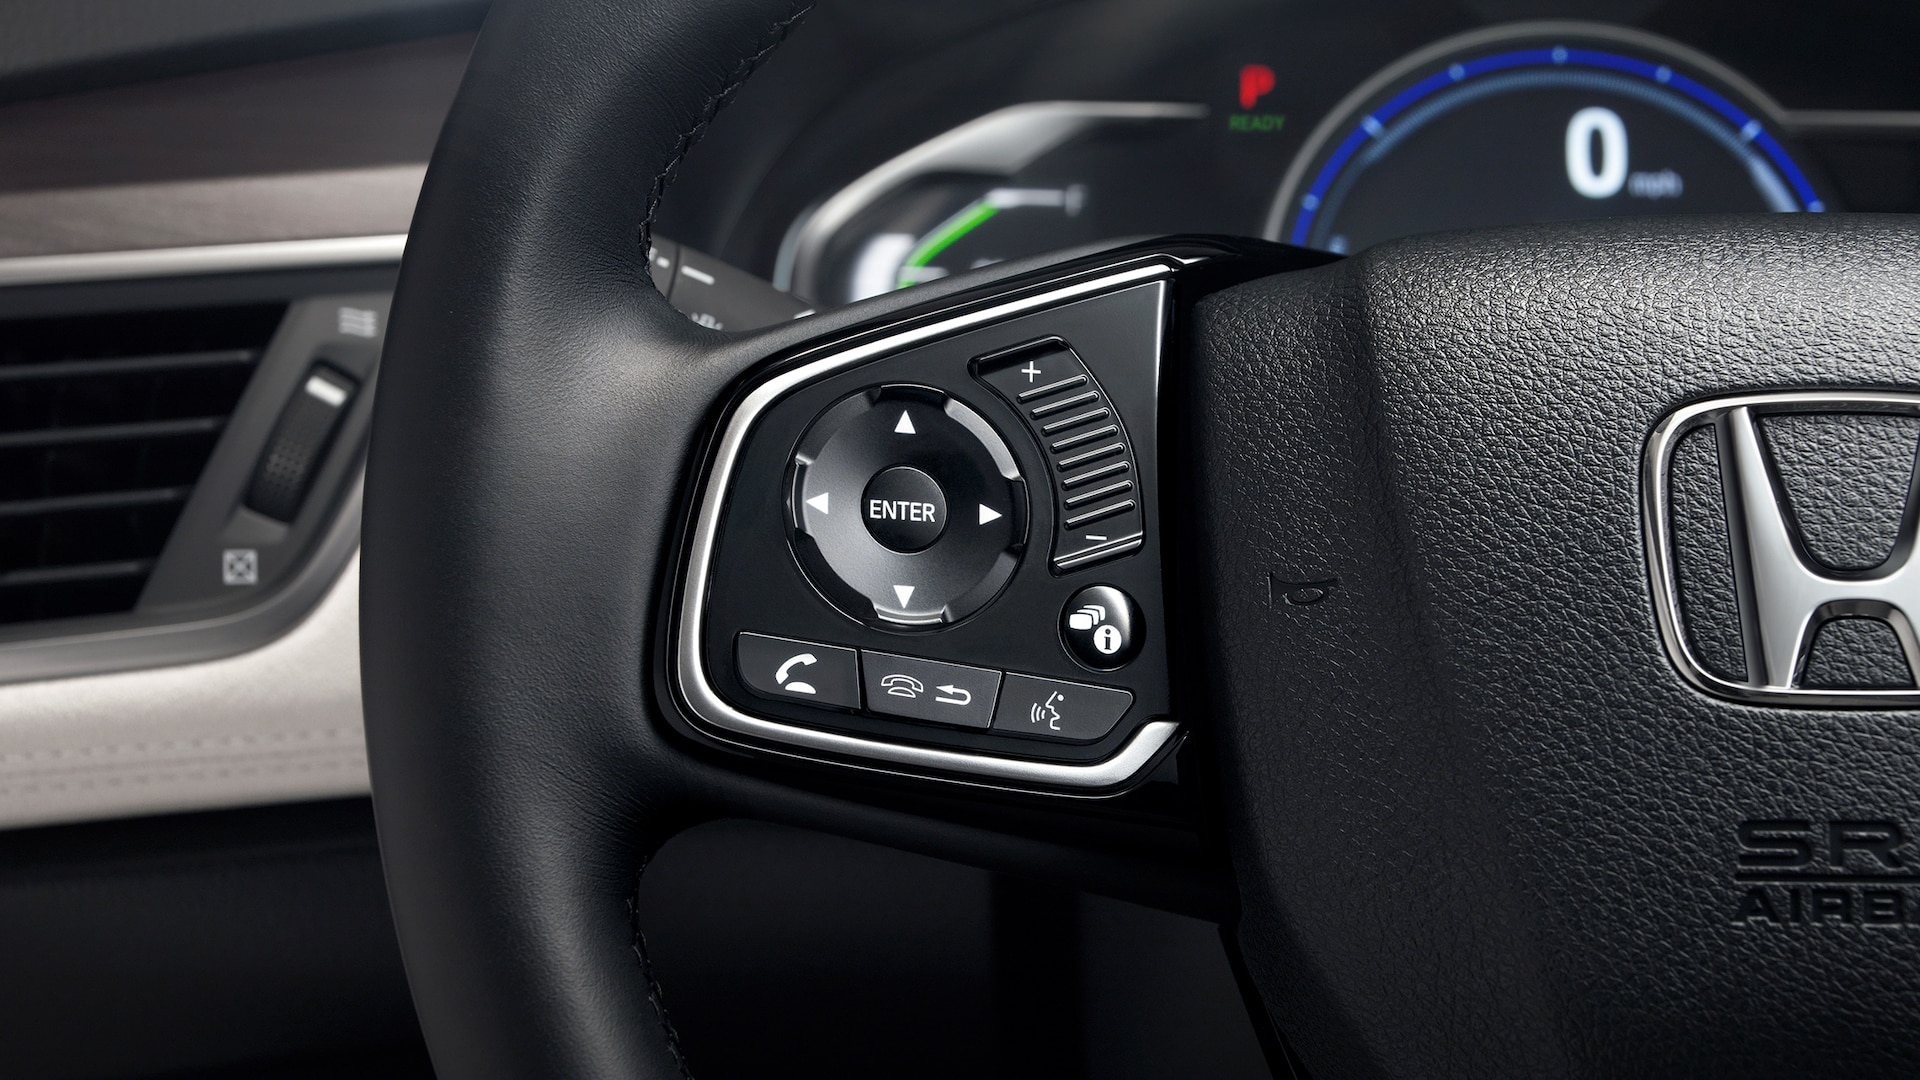 Detail of touch-sensitive steering wheel-mounted controls for 2021 Honda Clarity Fuel Cell.